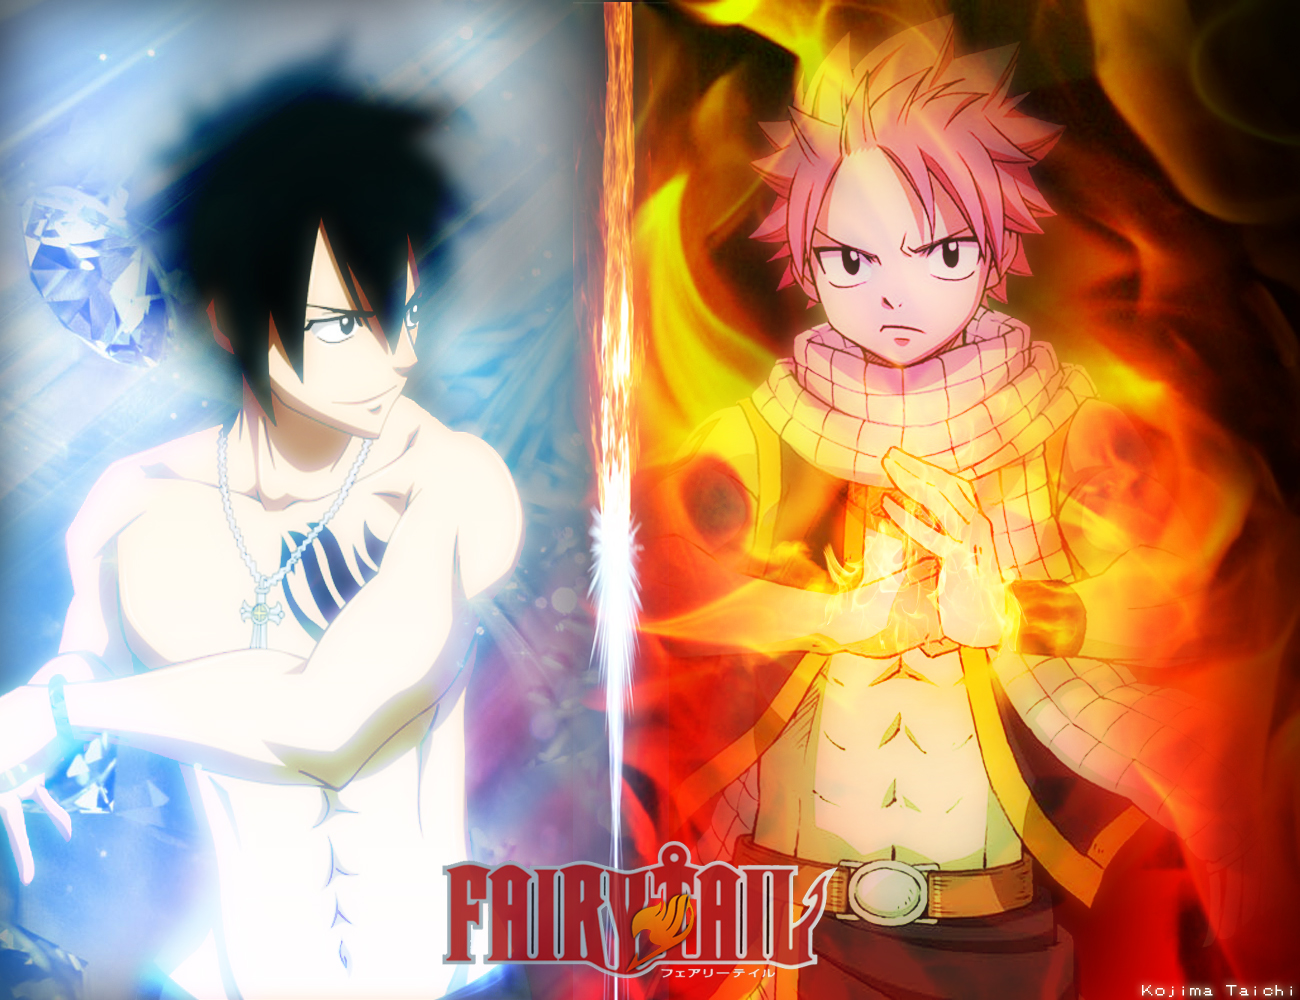 Natsu Dragneel Vs Grey Fullbuster By Kojimataichi On